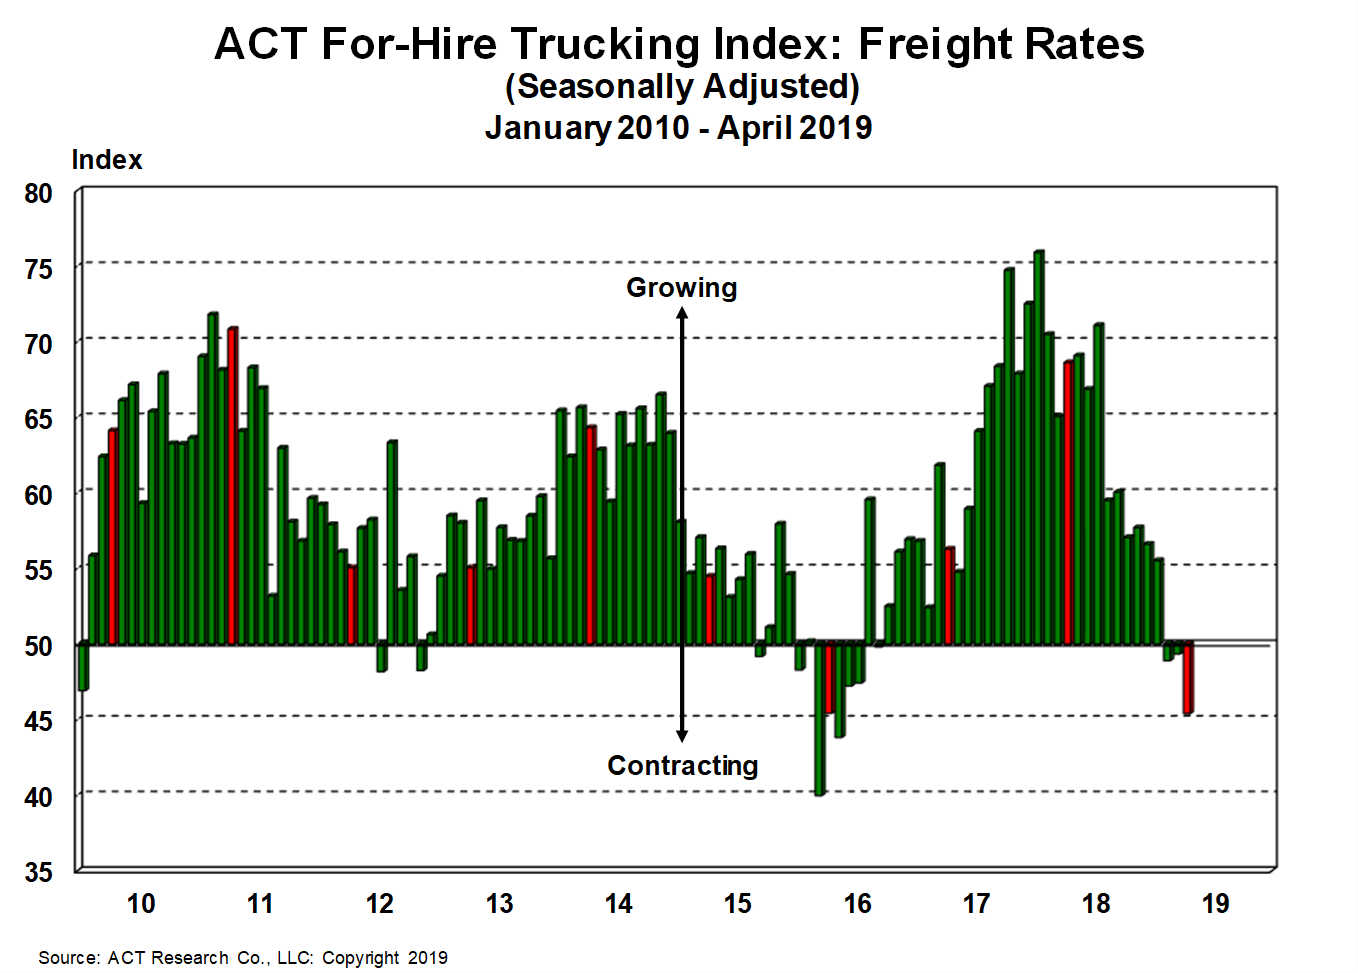 For-Hire Freight Rates 5-17-19